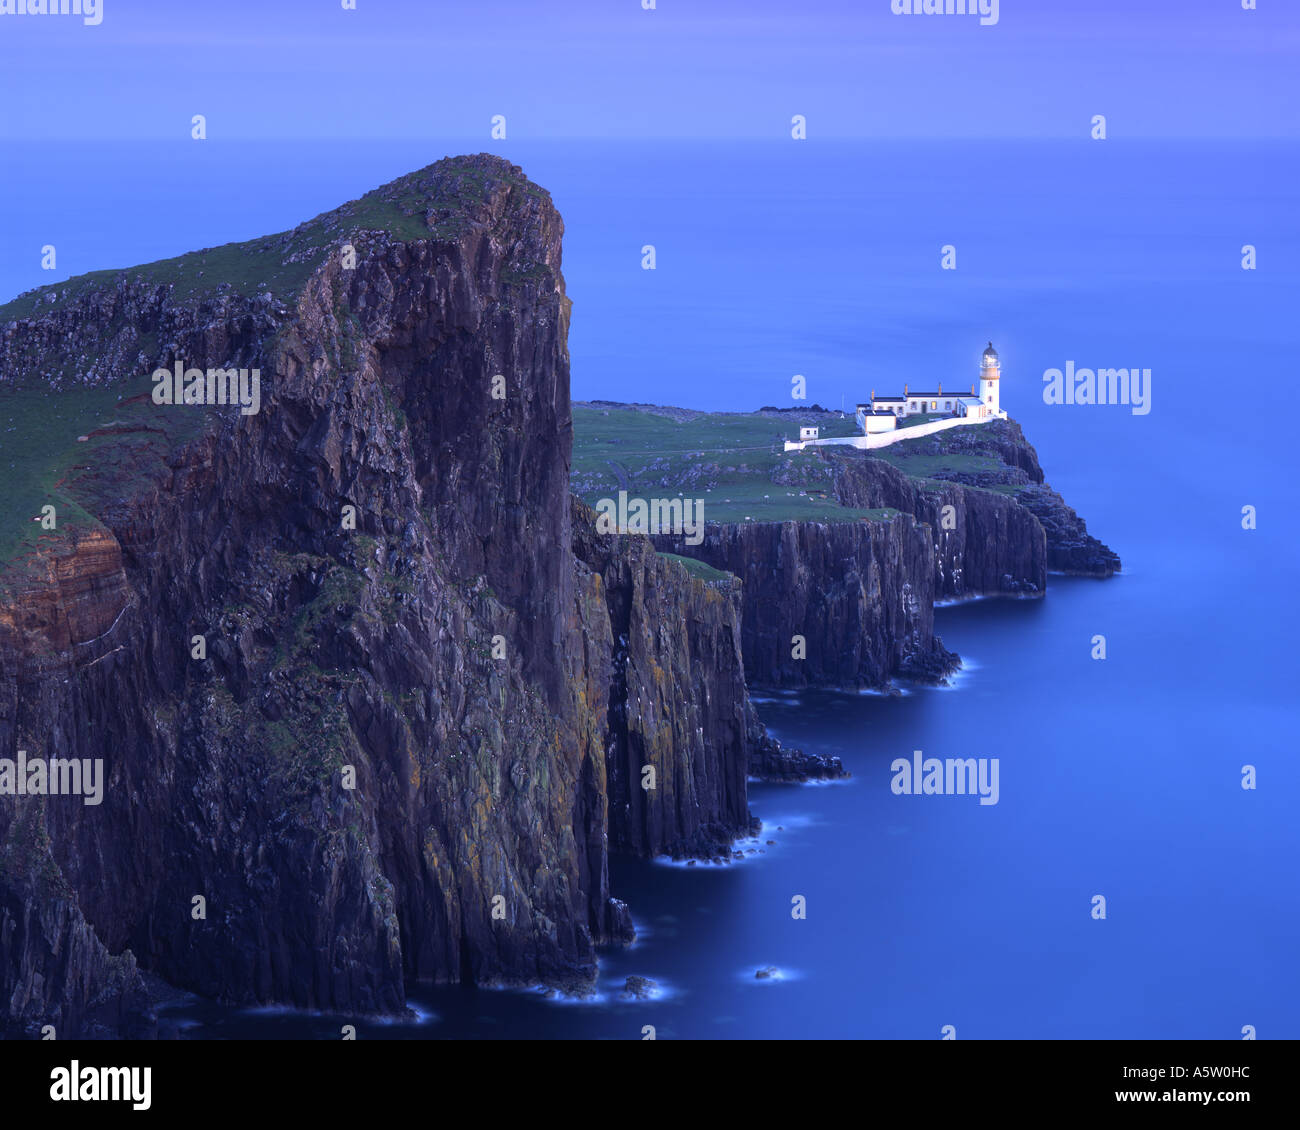 GB - Escocia: Neist Point faro en la Isla de Skye Foto de stock